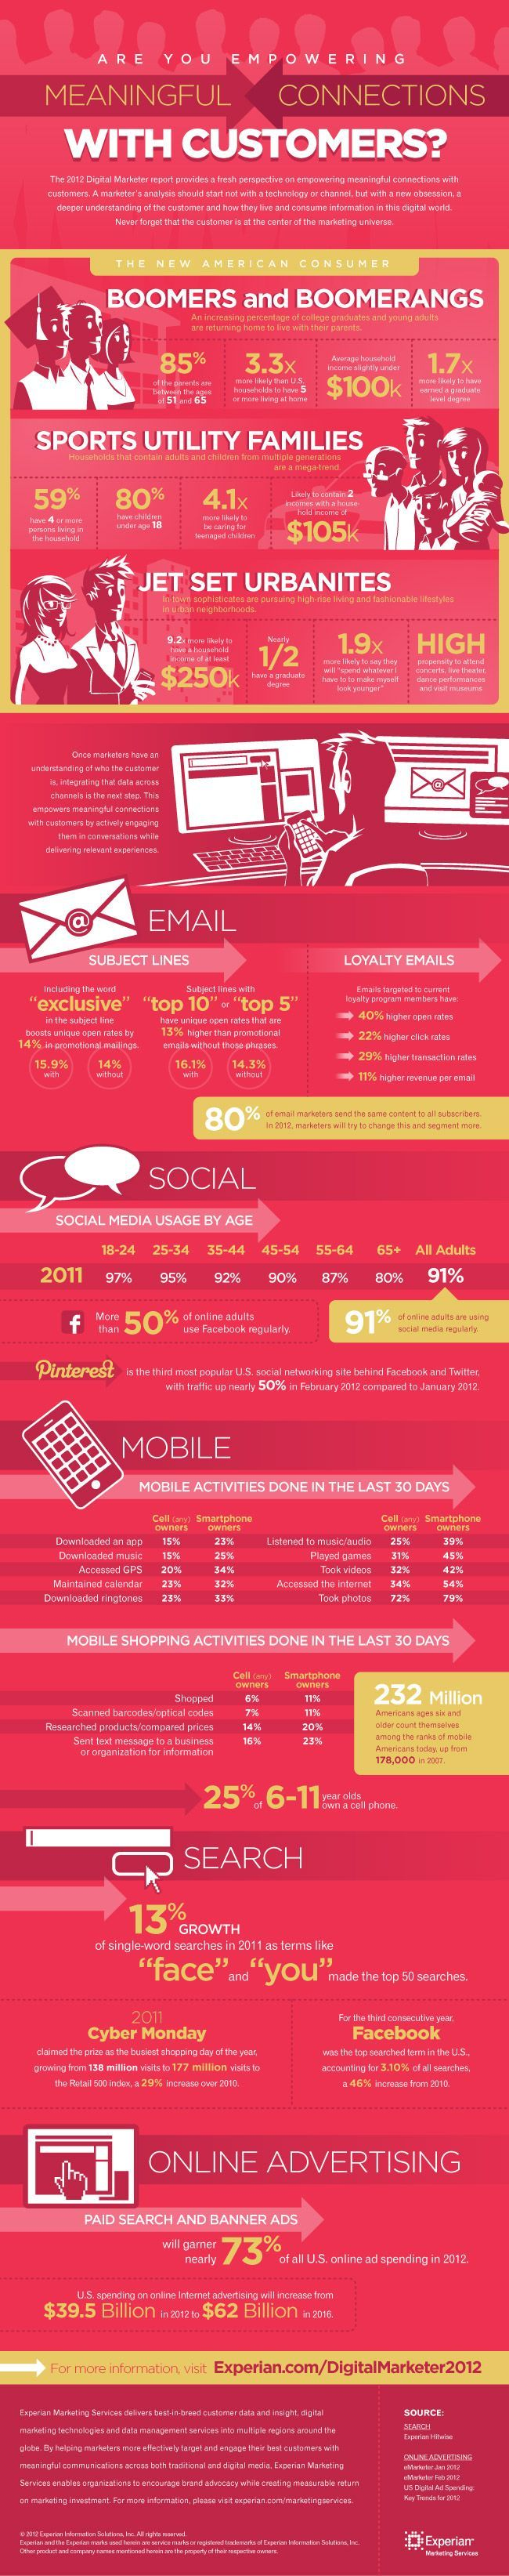 2012 Digital Marketer Infographic Business infographic